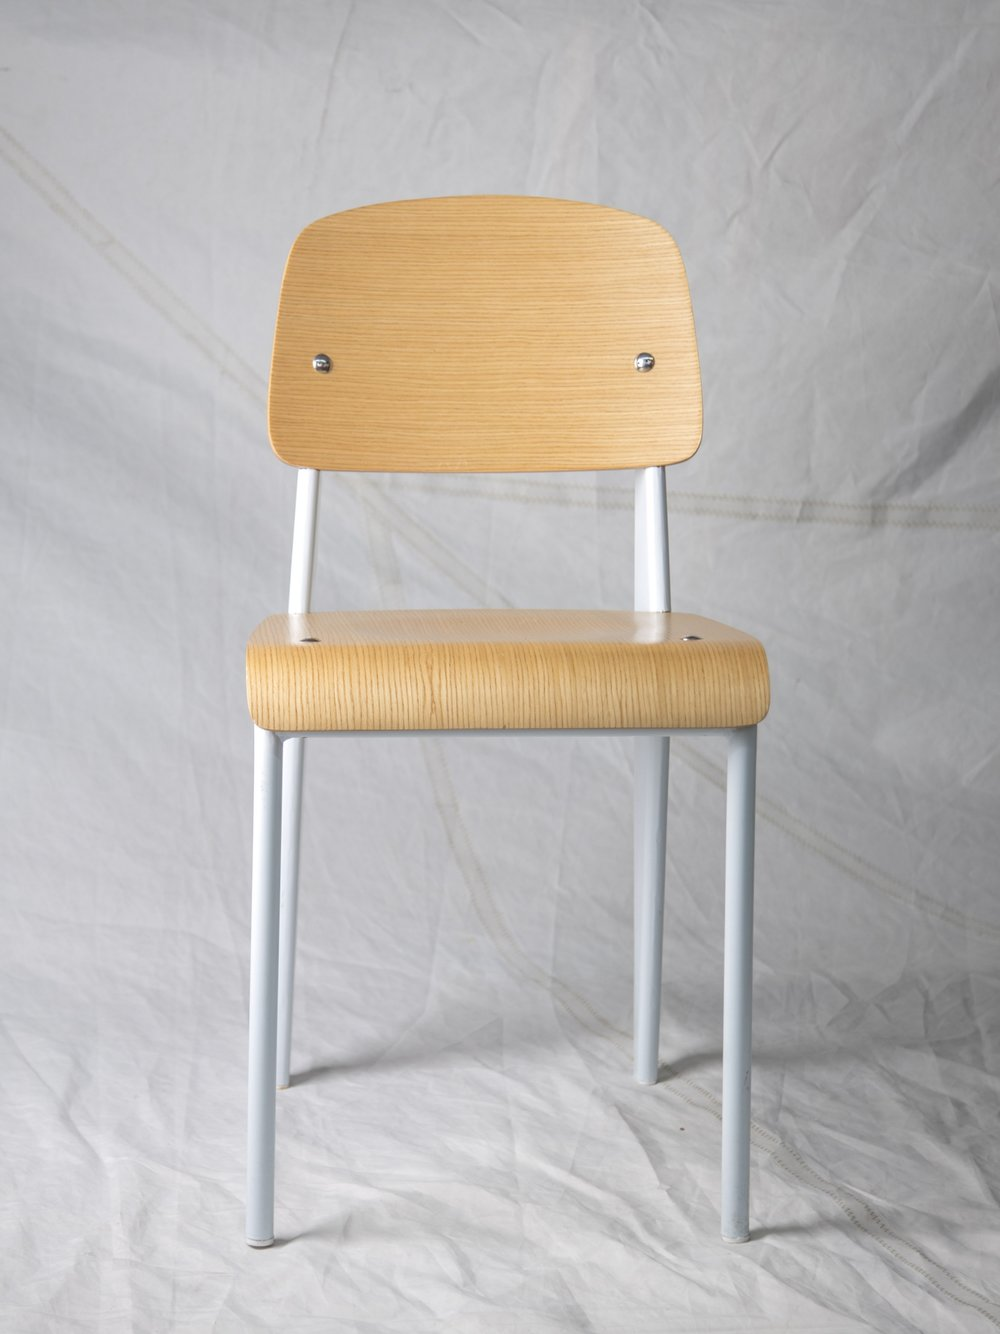 "CH056 - CH058 Prouvé style chair, white/wood 32"" H x 16"" W x 19"" D $100/week each Set of 3"